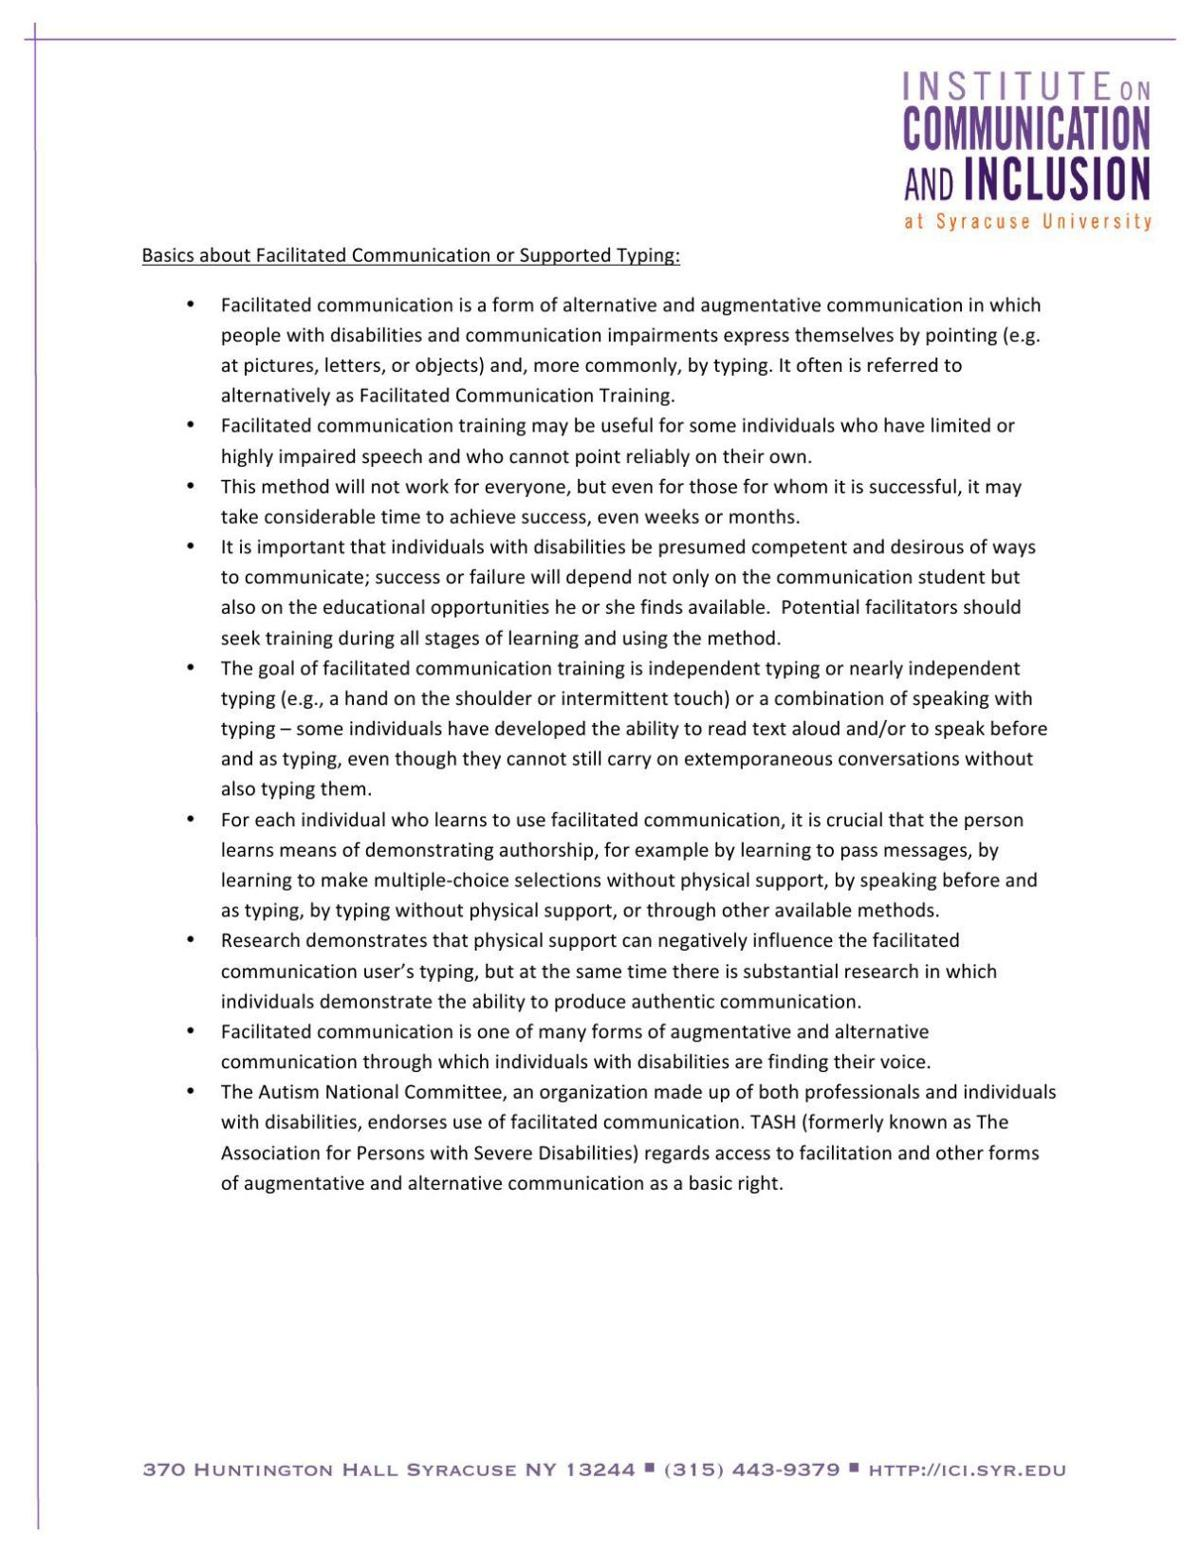 PDF: Facilitated Communication/Supported Typing